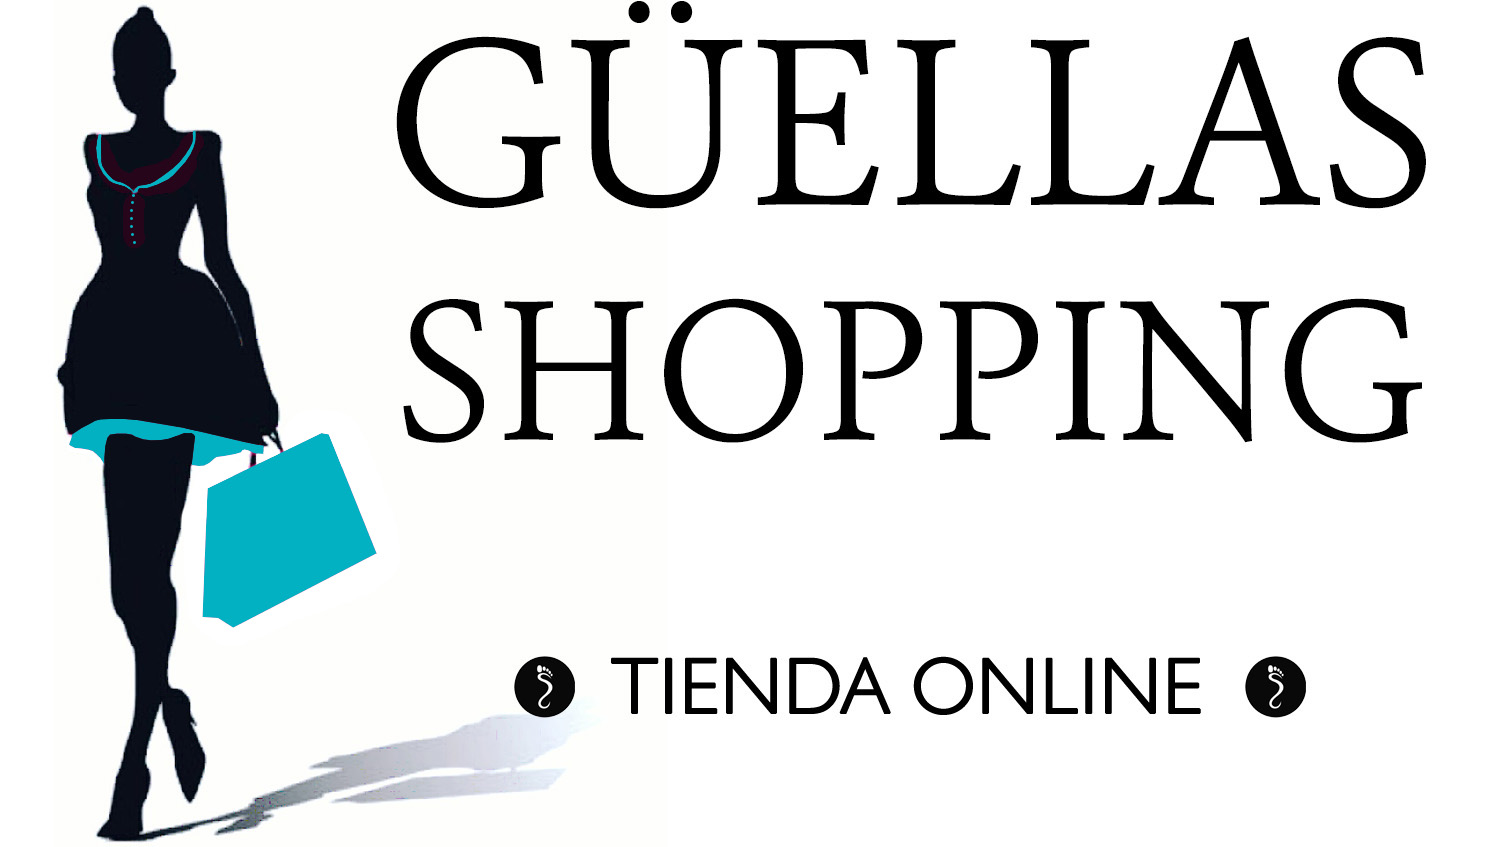 Guellas Shopping